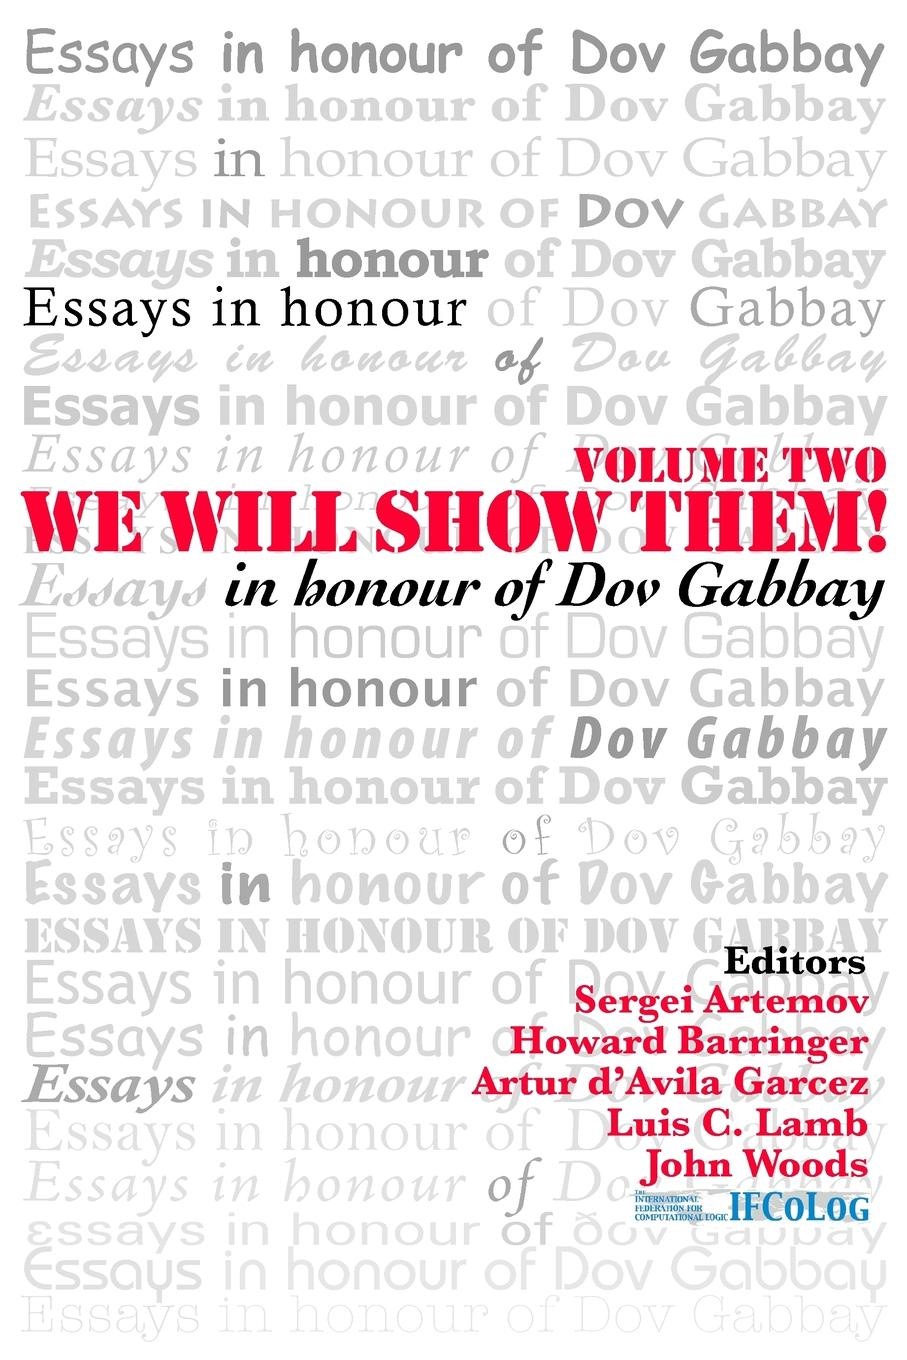 We Will Show Them. Essays in Honour of Dov Gabbay. Volume 2 logic london